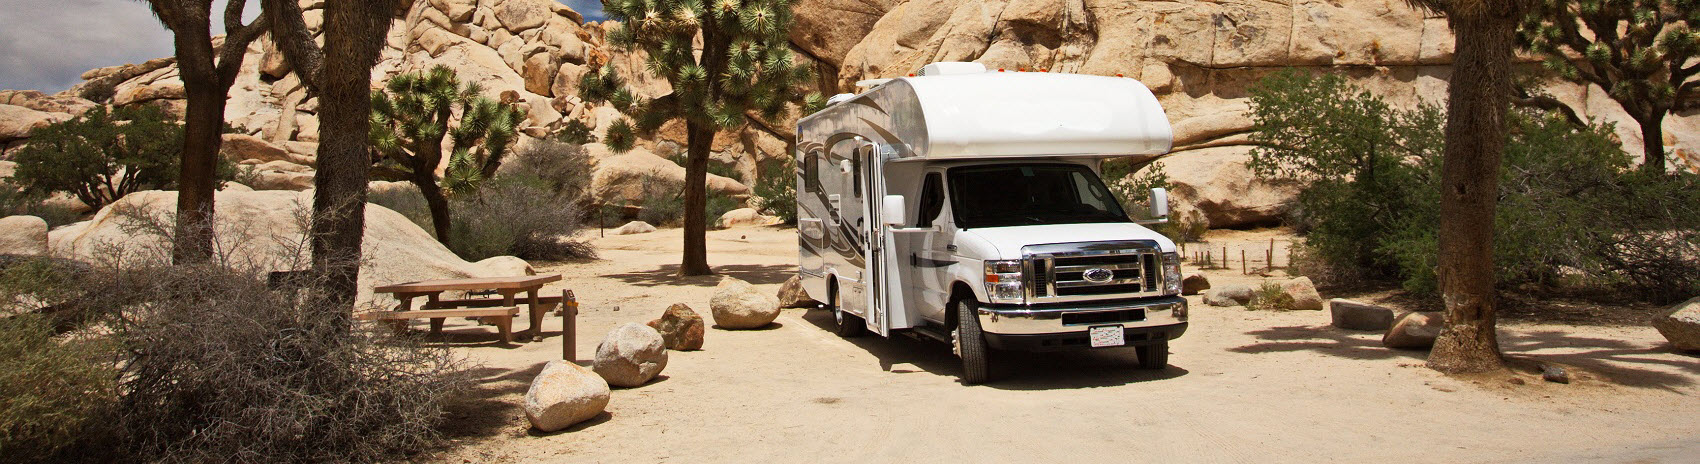 Best RV Models